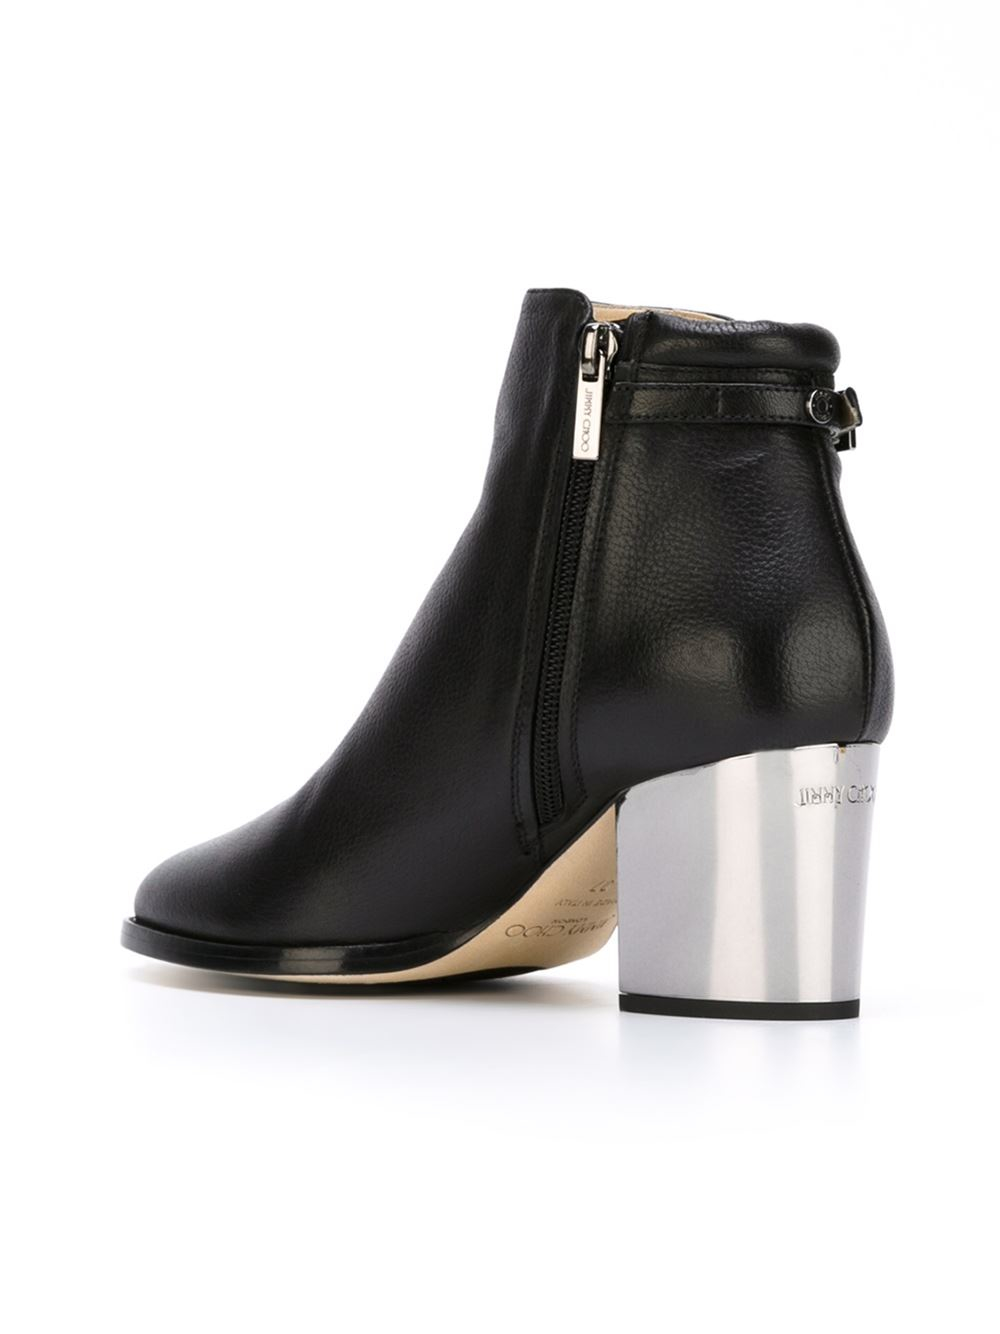 Jimmy choo 'Method' Boots in Black | Lyst